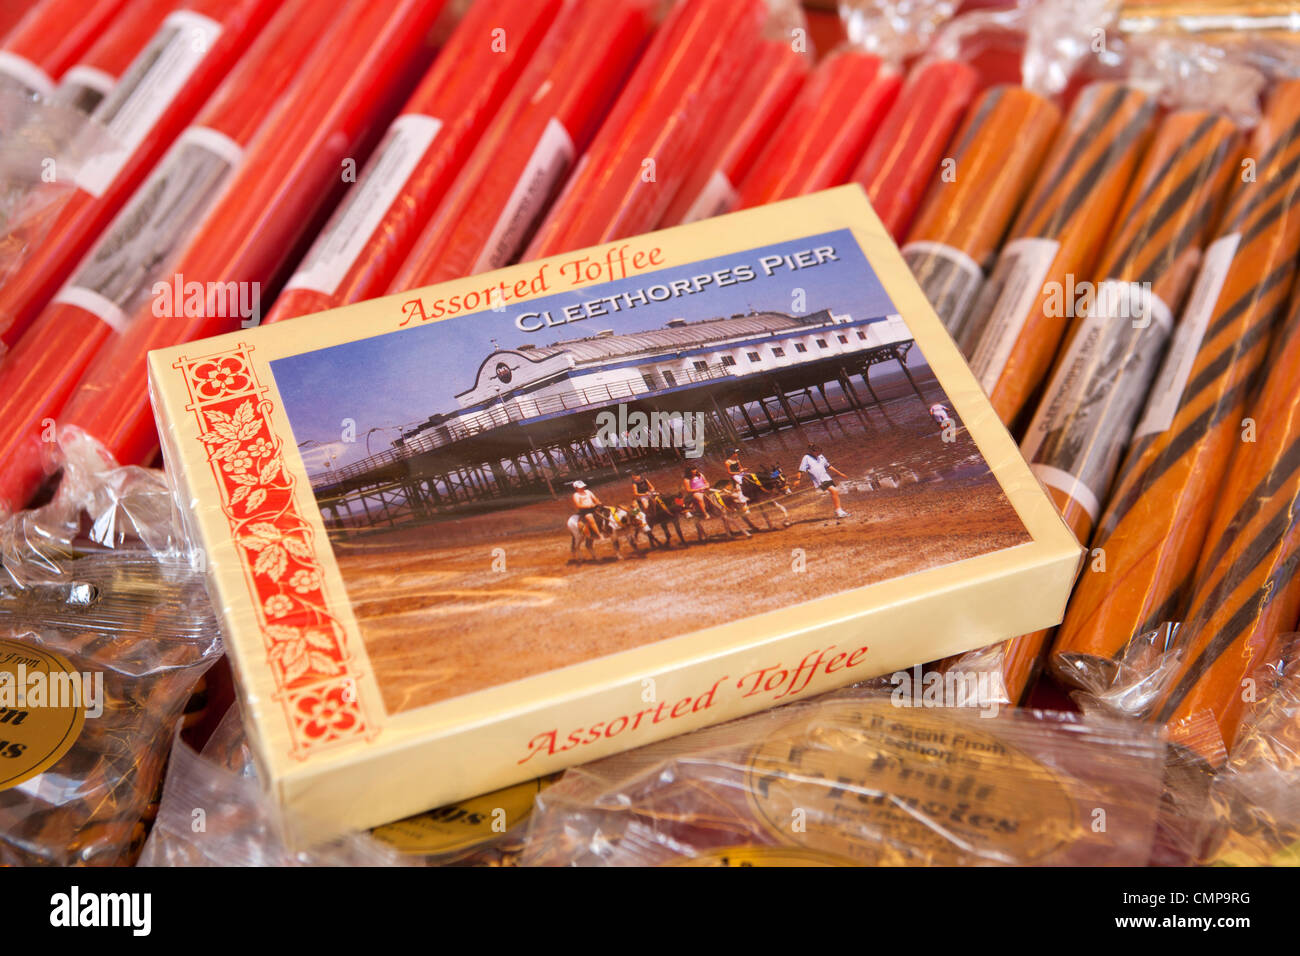 UK, England, Lincolnshire, Cleethorpes, box of Cleethorpes pier toffee at seafront rock and sweet stall - Stock Image